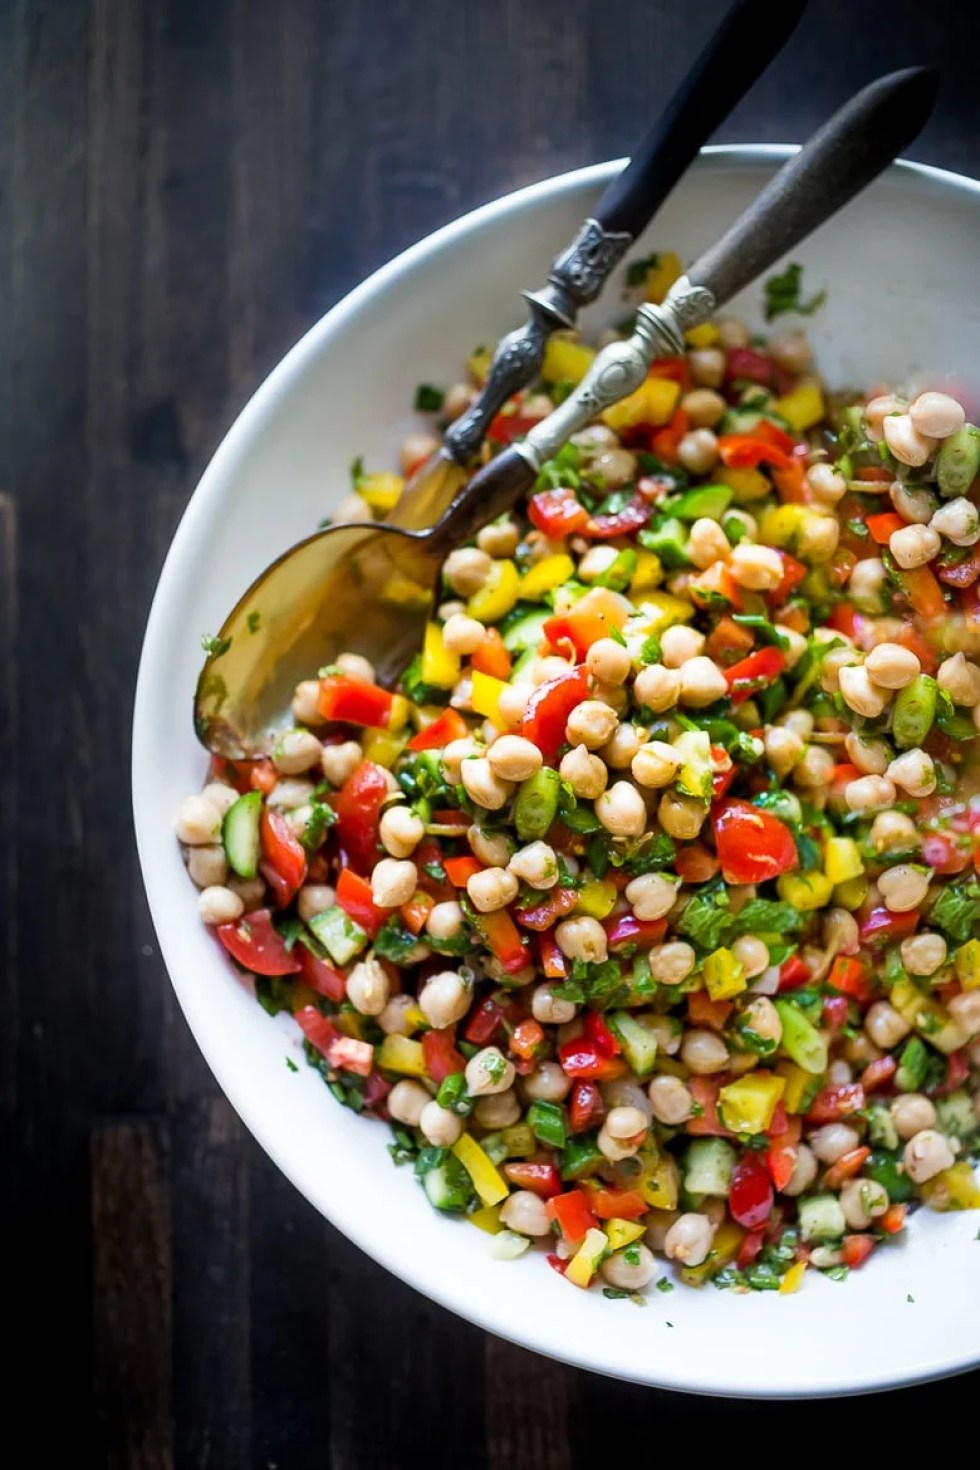 EAT CLEAN with these 20 simple Plant-Based Meals!!!   Middle Eastern Balela Salad with chickpeas & fresh chopped veggies bursting with Middle Eastern flavor. Stuff in a pita or wrap, or eat on its own!  www.feeastingathome.com